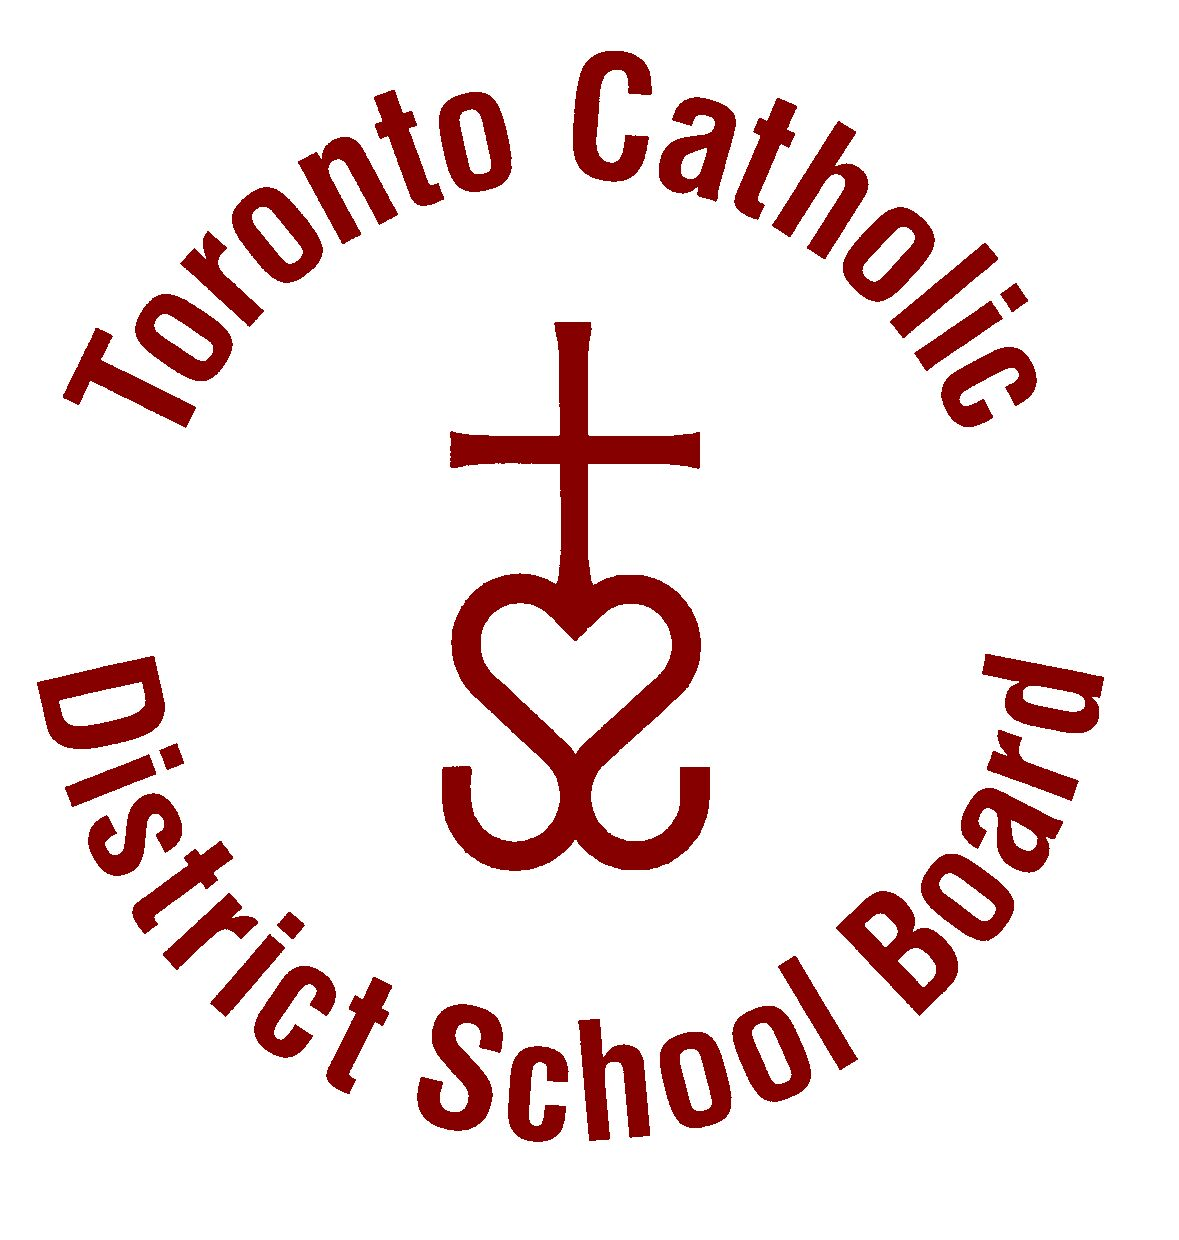 Toronto catholic district school board buycottarizona